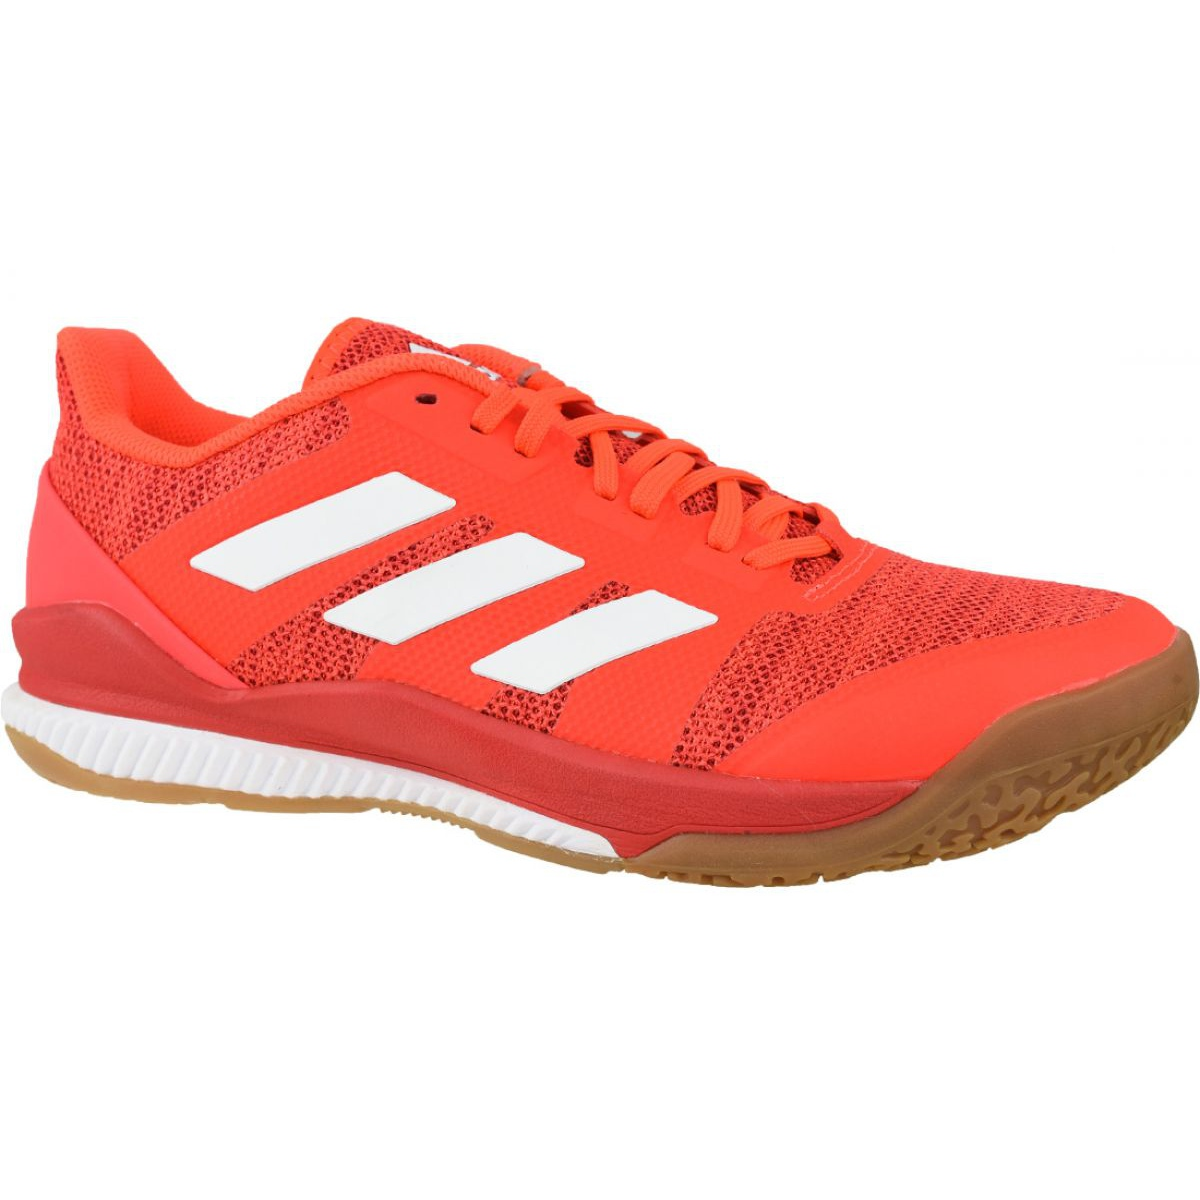 Adidas Zg Stabil Bounce M AC8691 shoes multicolored red